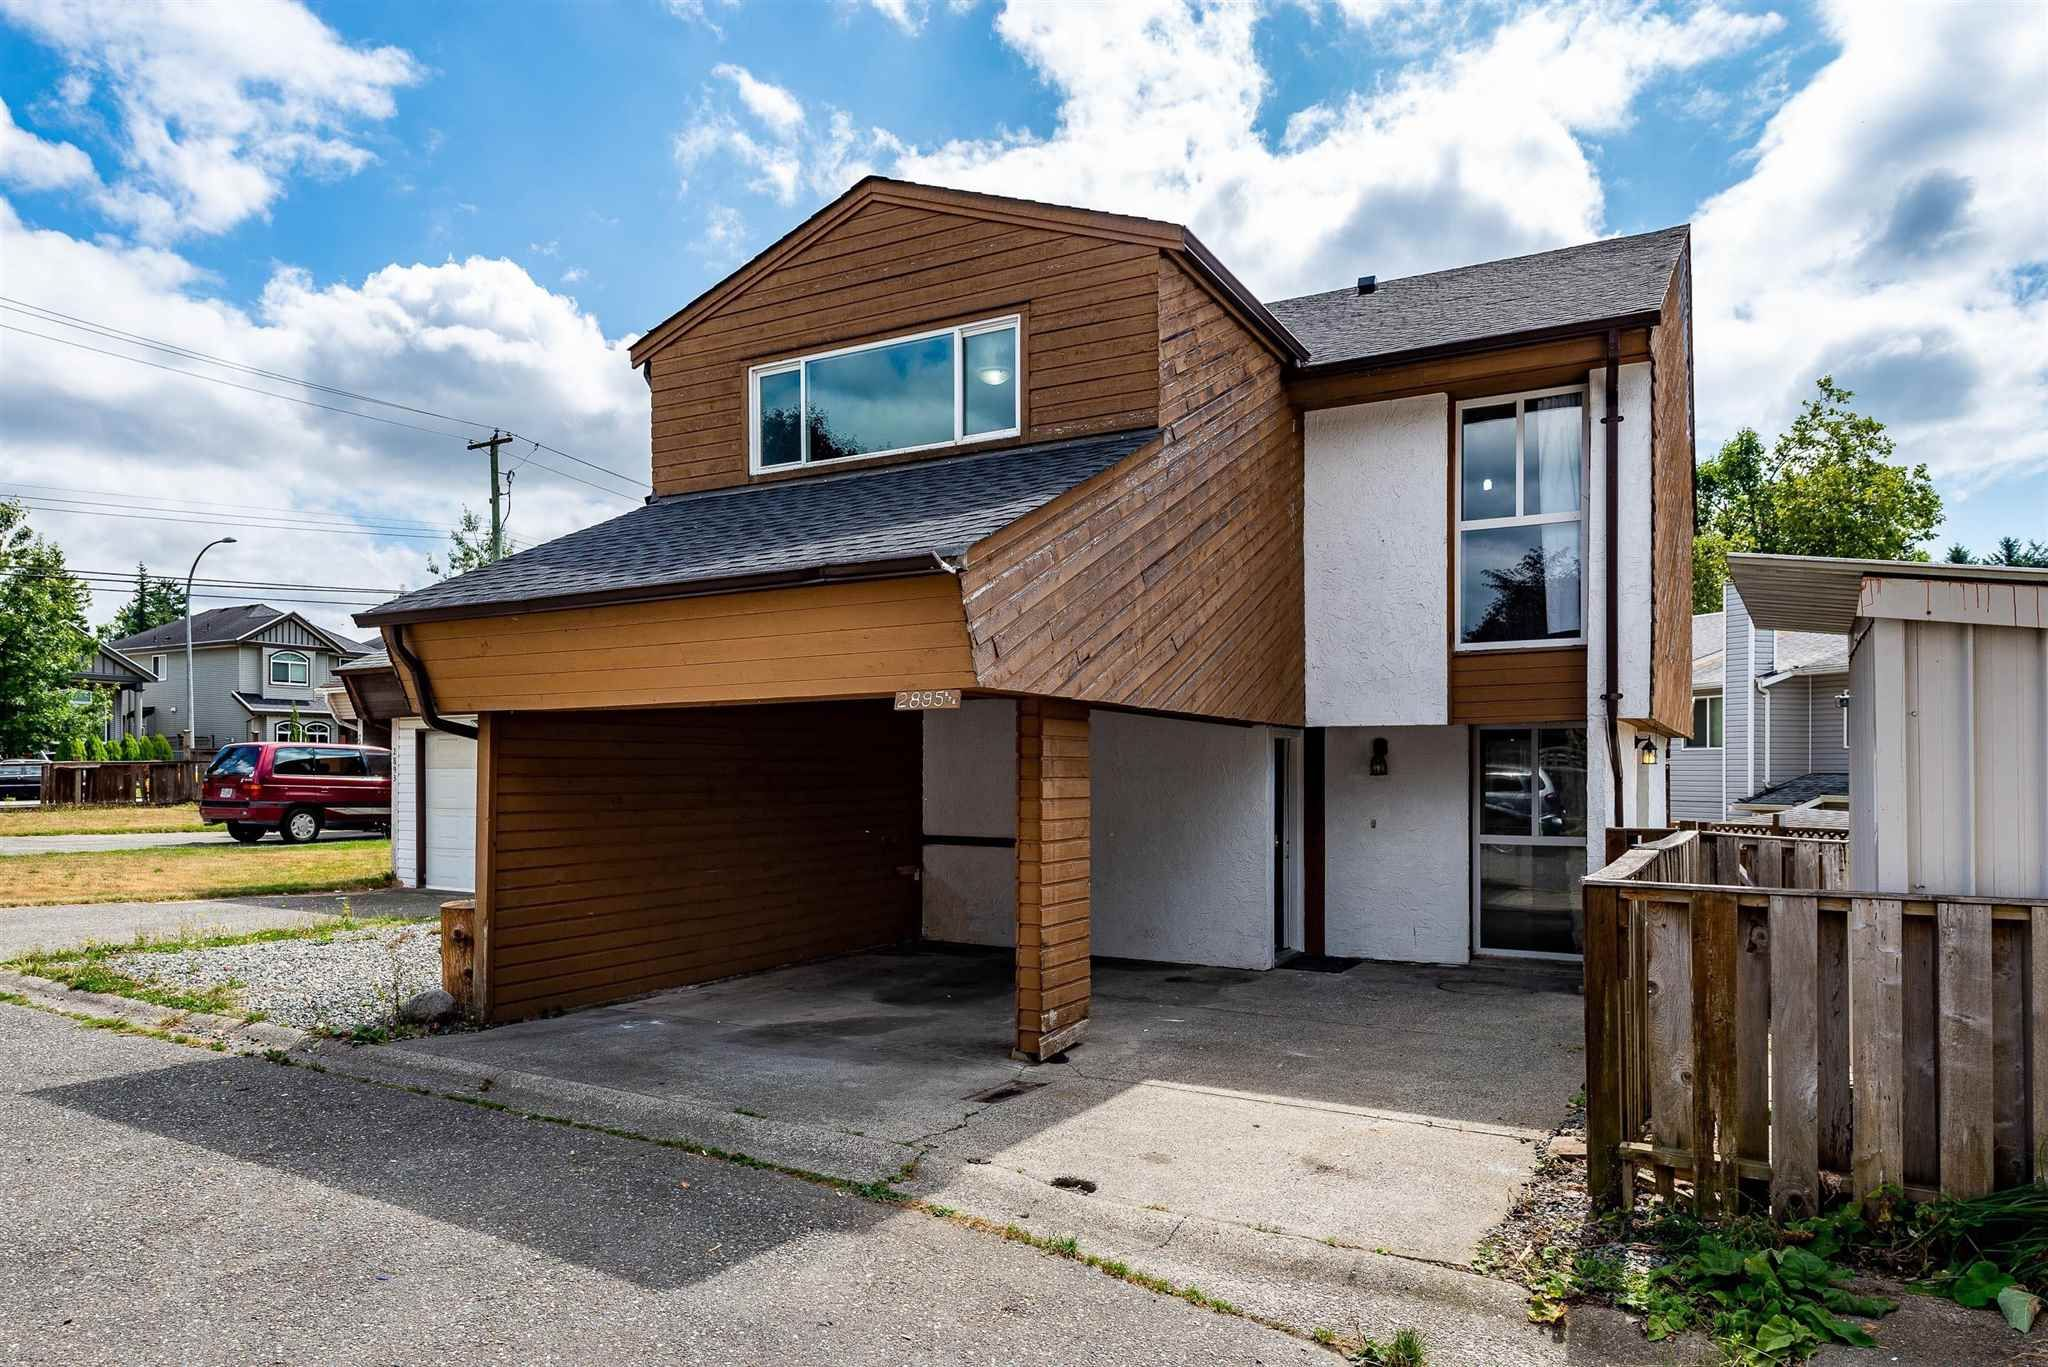 Main Photo: 2895 276 Street in Langley: Aldergrove Langley House for sale : MLS®# R2594084